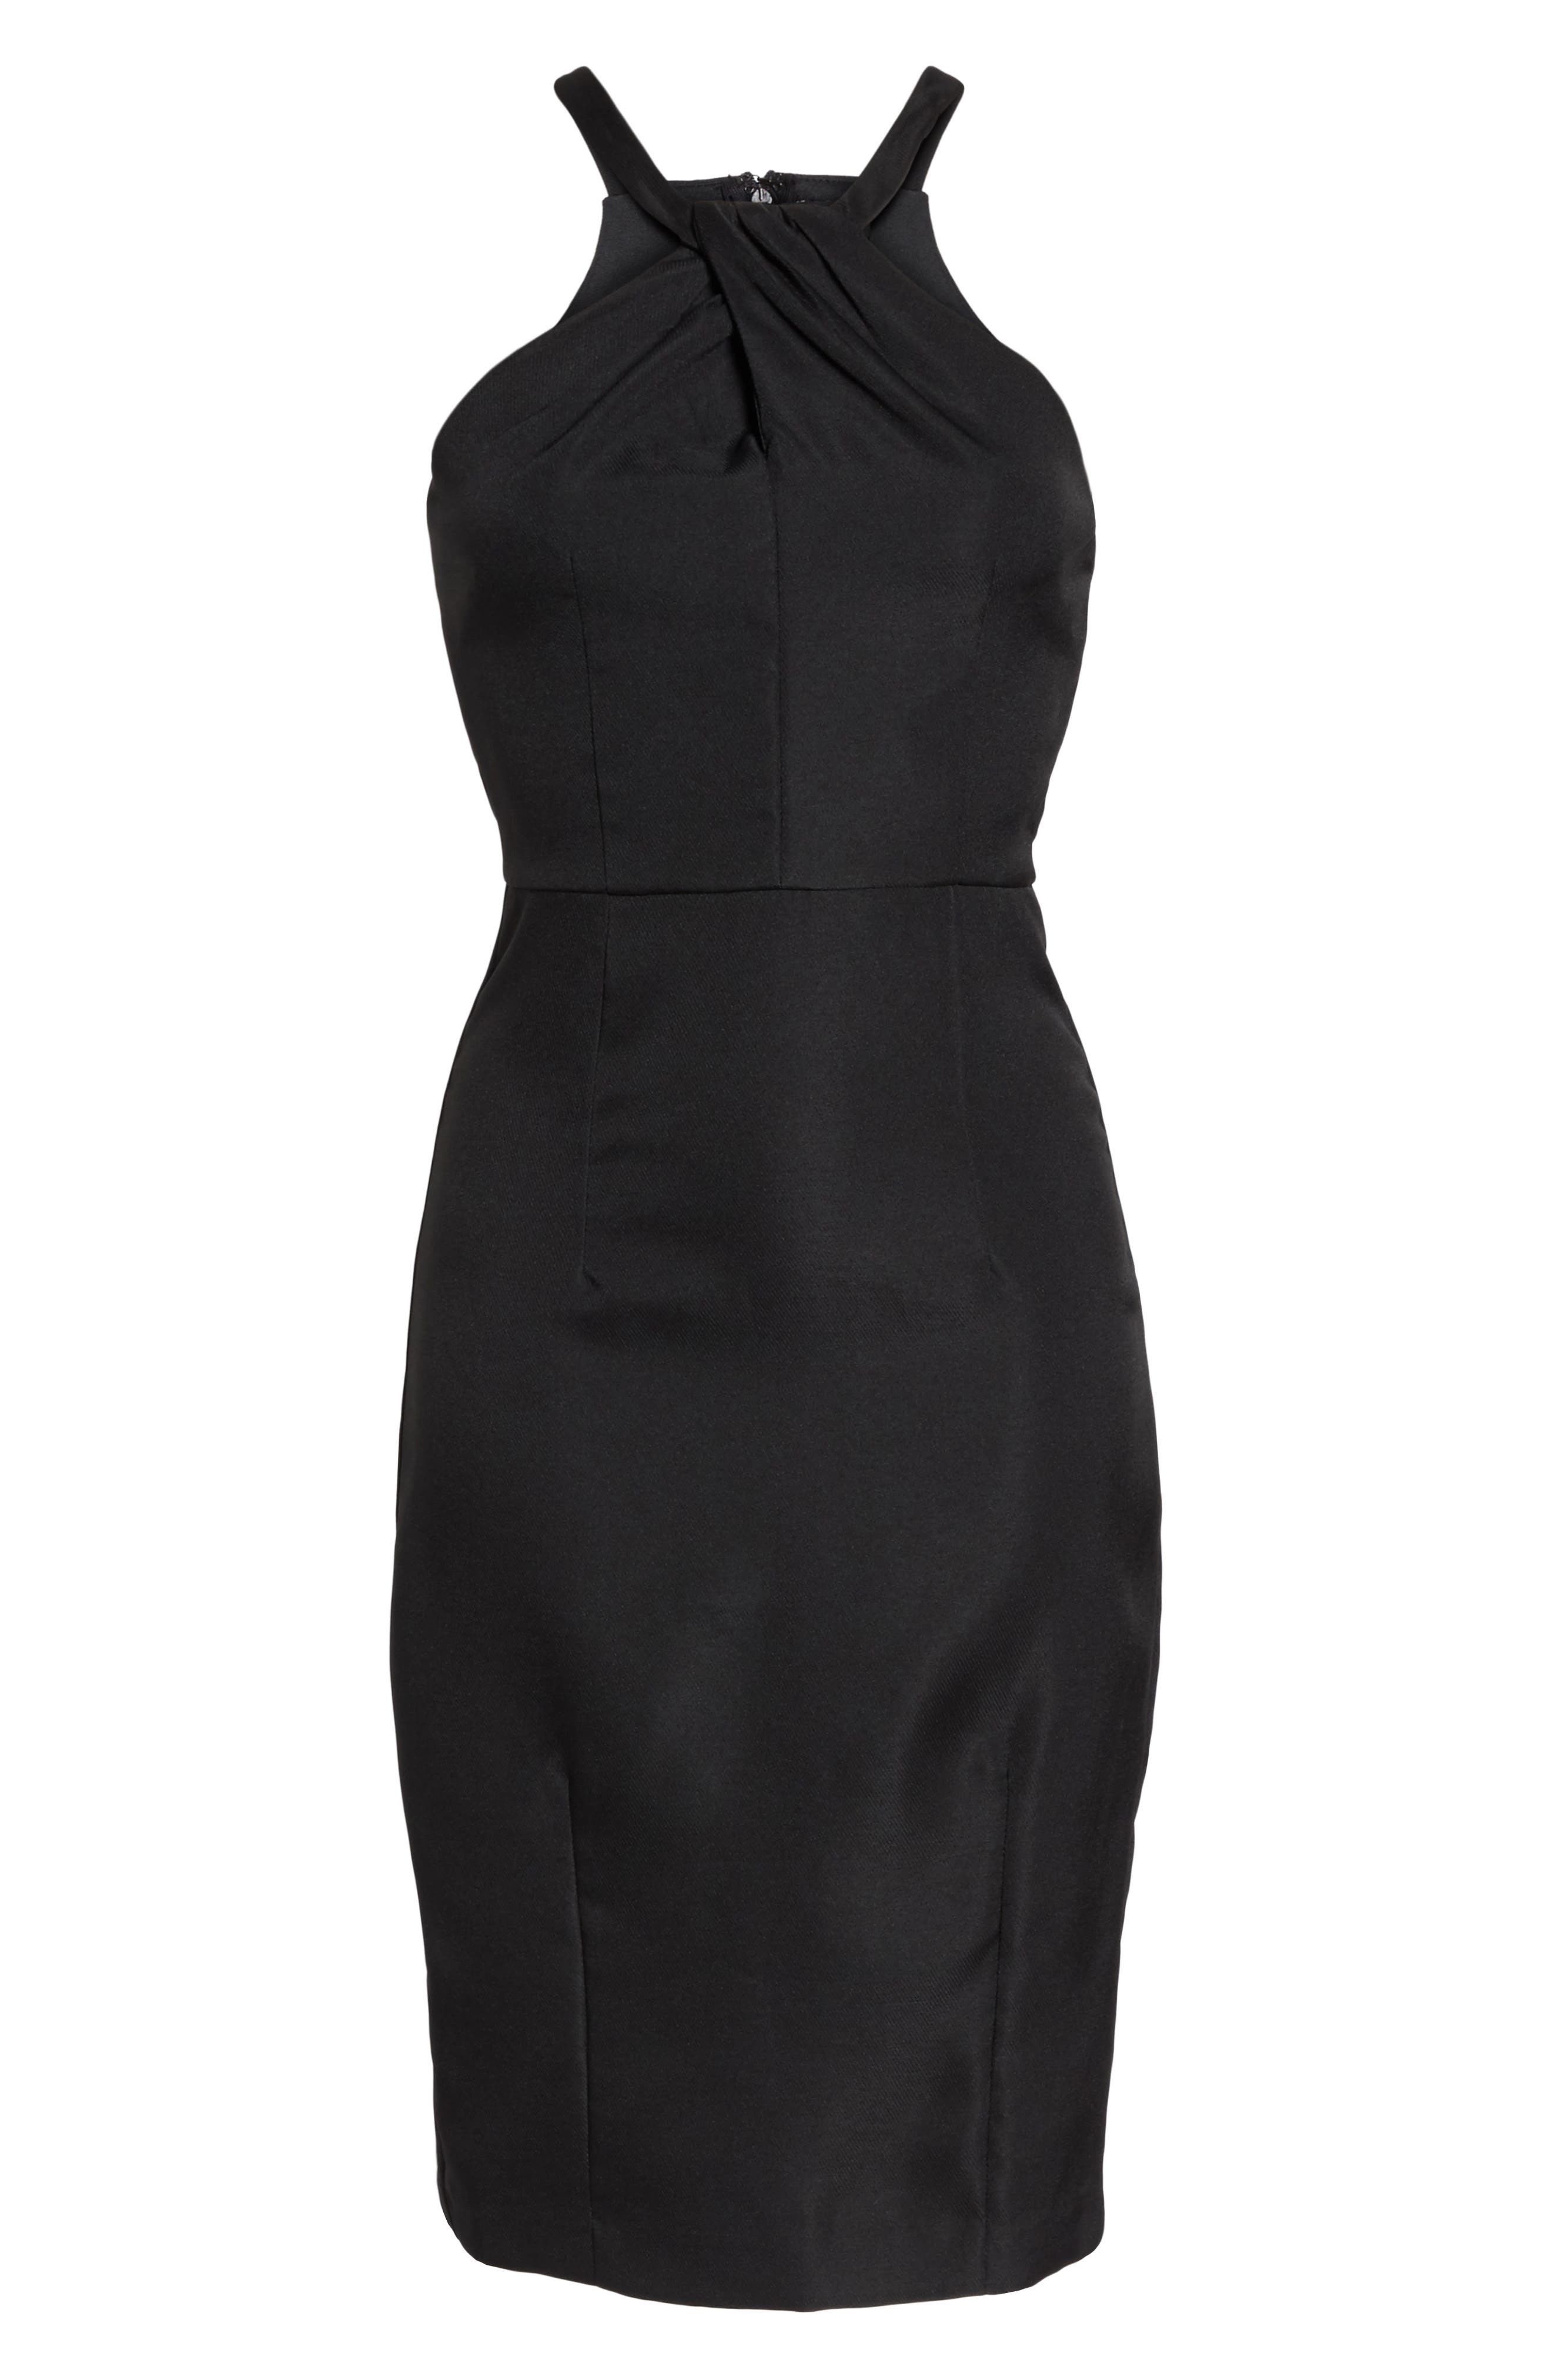 Be My Baby Halter Sheath Dress,                             Alternate thumbnail 7, color,                             BLACK